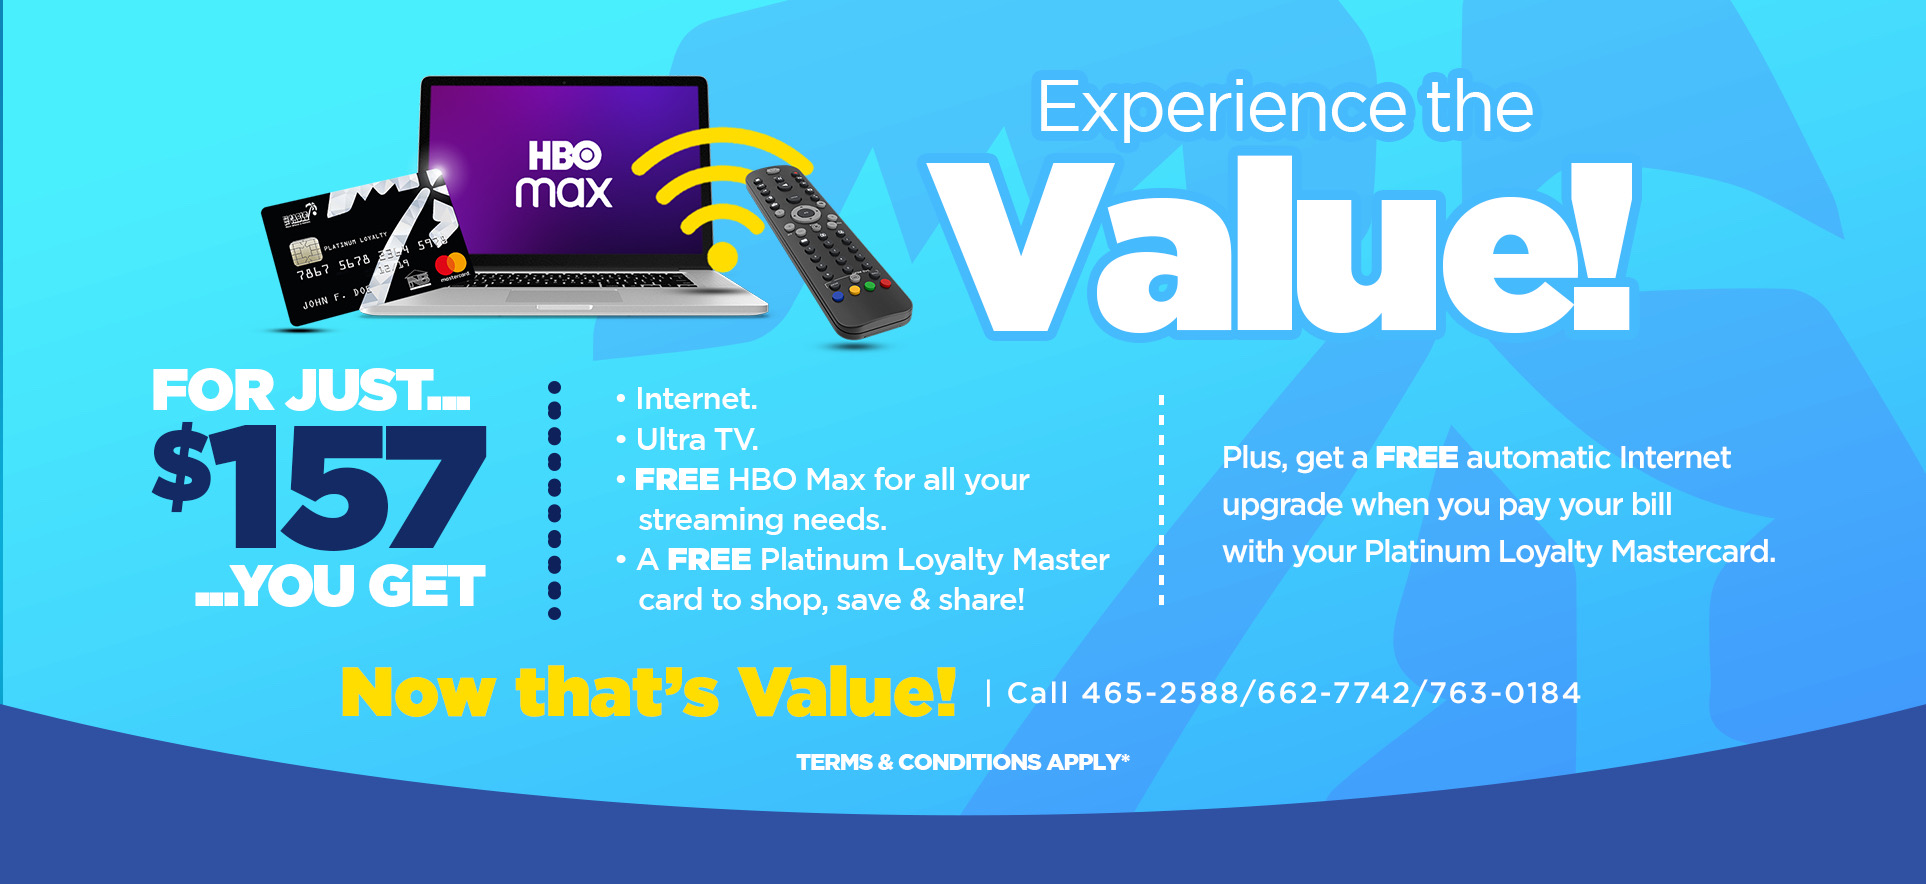 Experience the Value